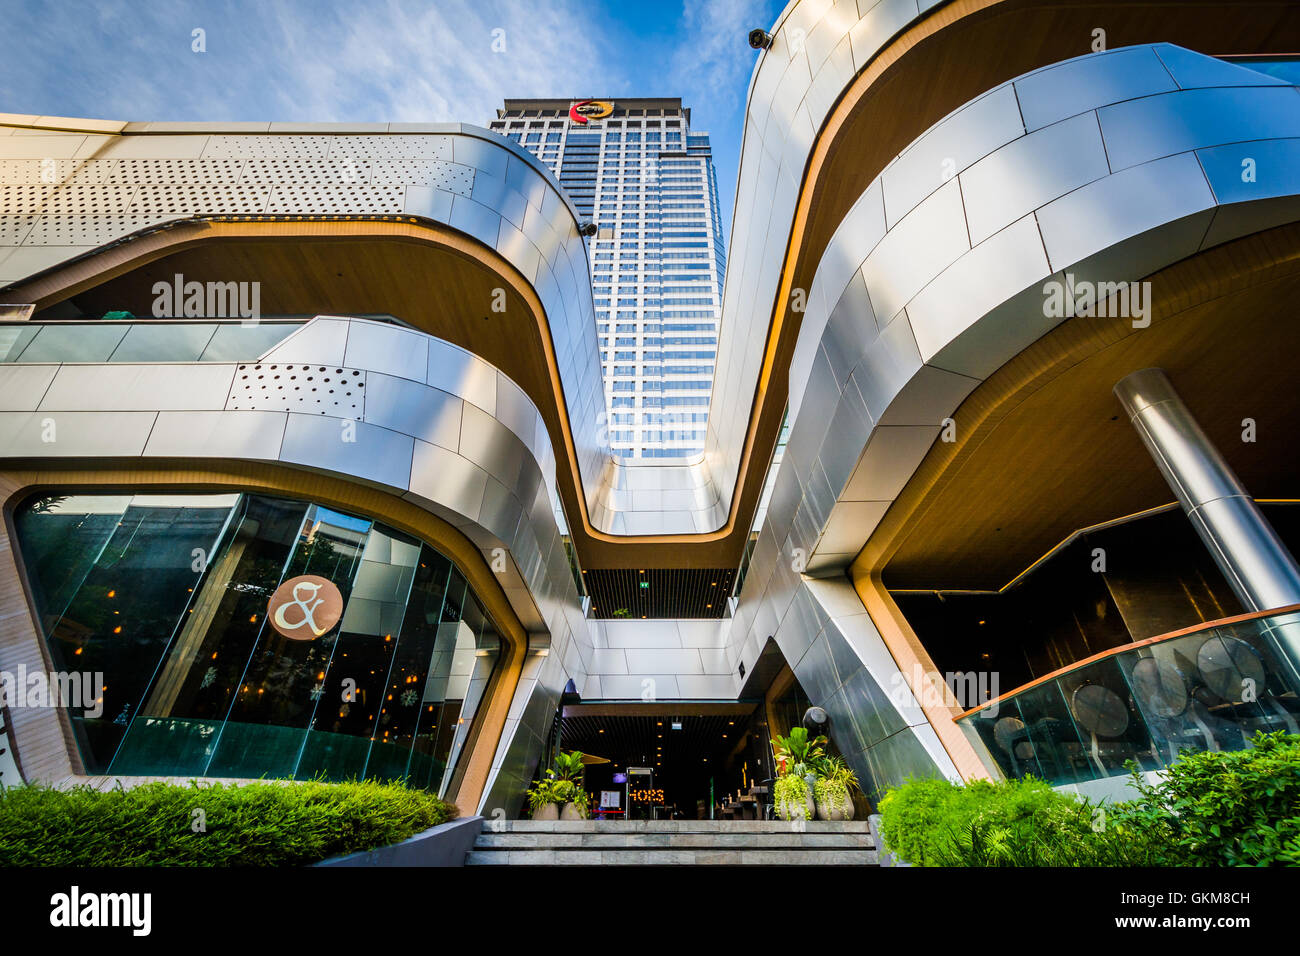 The exterior of the CentralWorld Mall, at Siam, in Bangkok, Thailand. - Stock Image